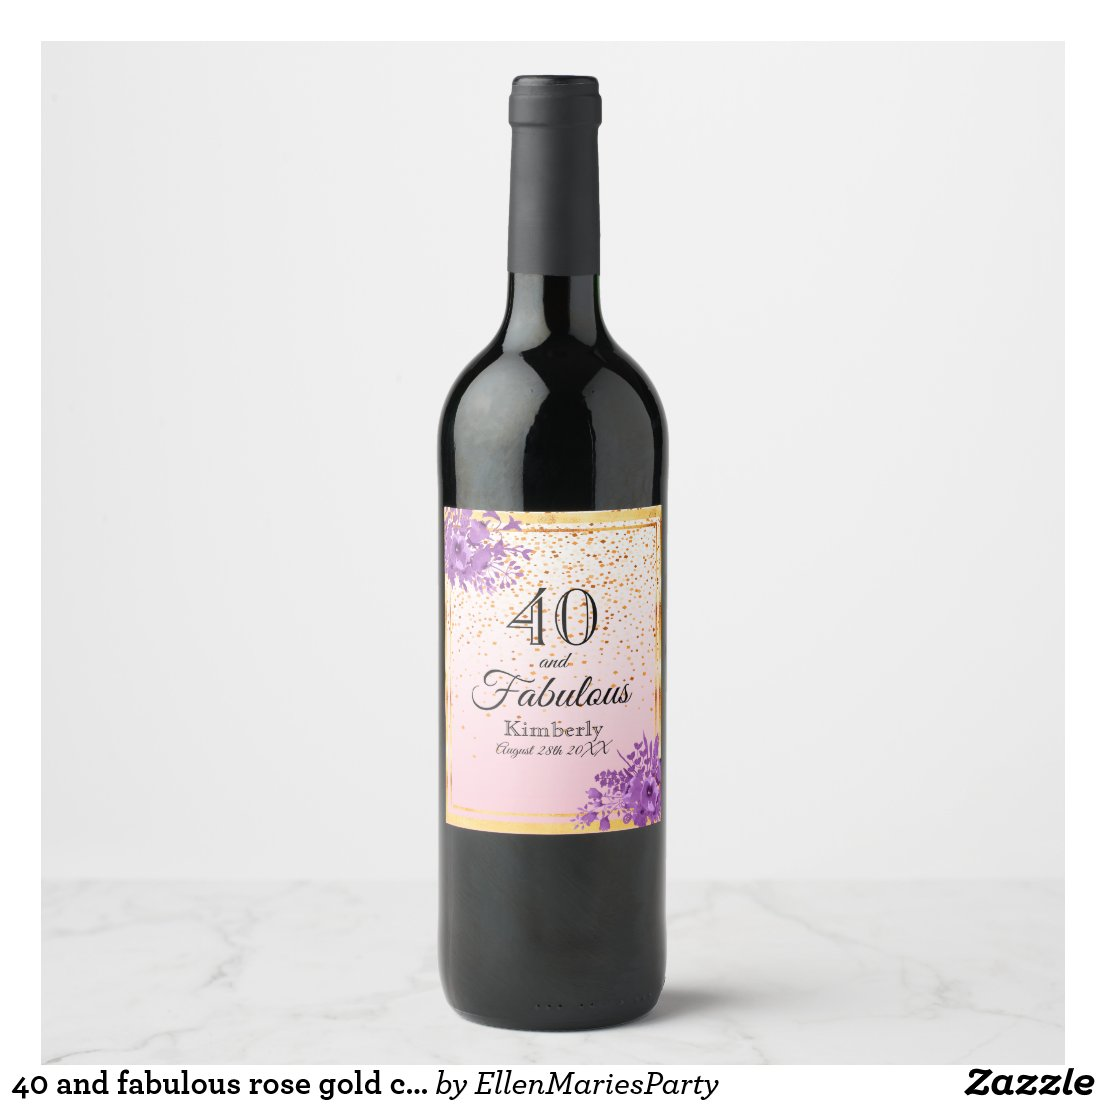 40 and fabulous rose gold confetti and flowers wine label